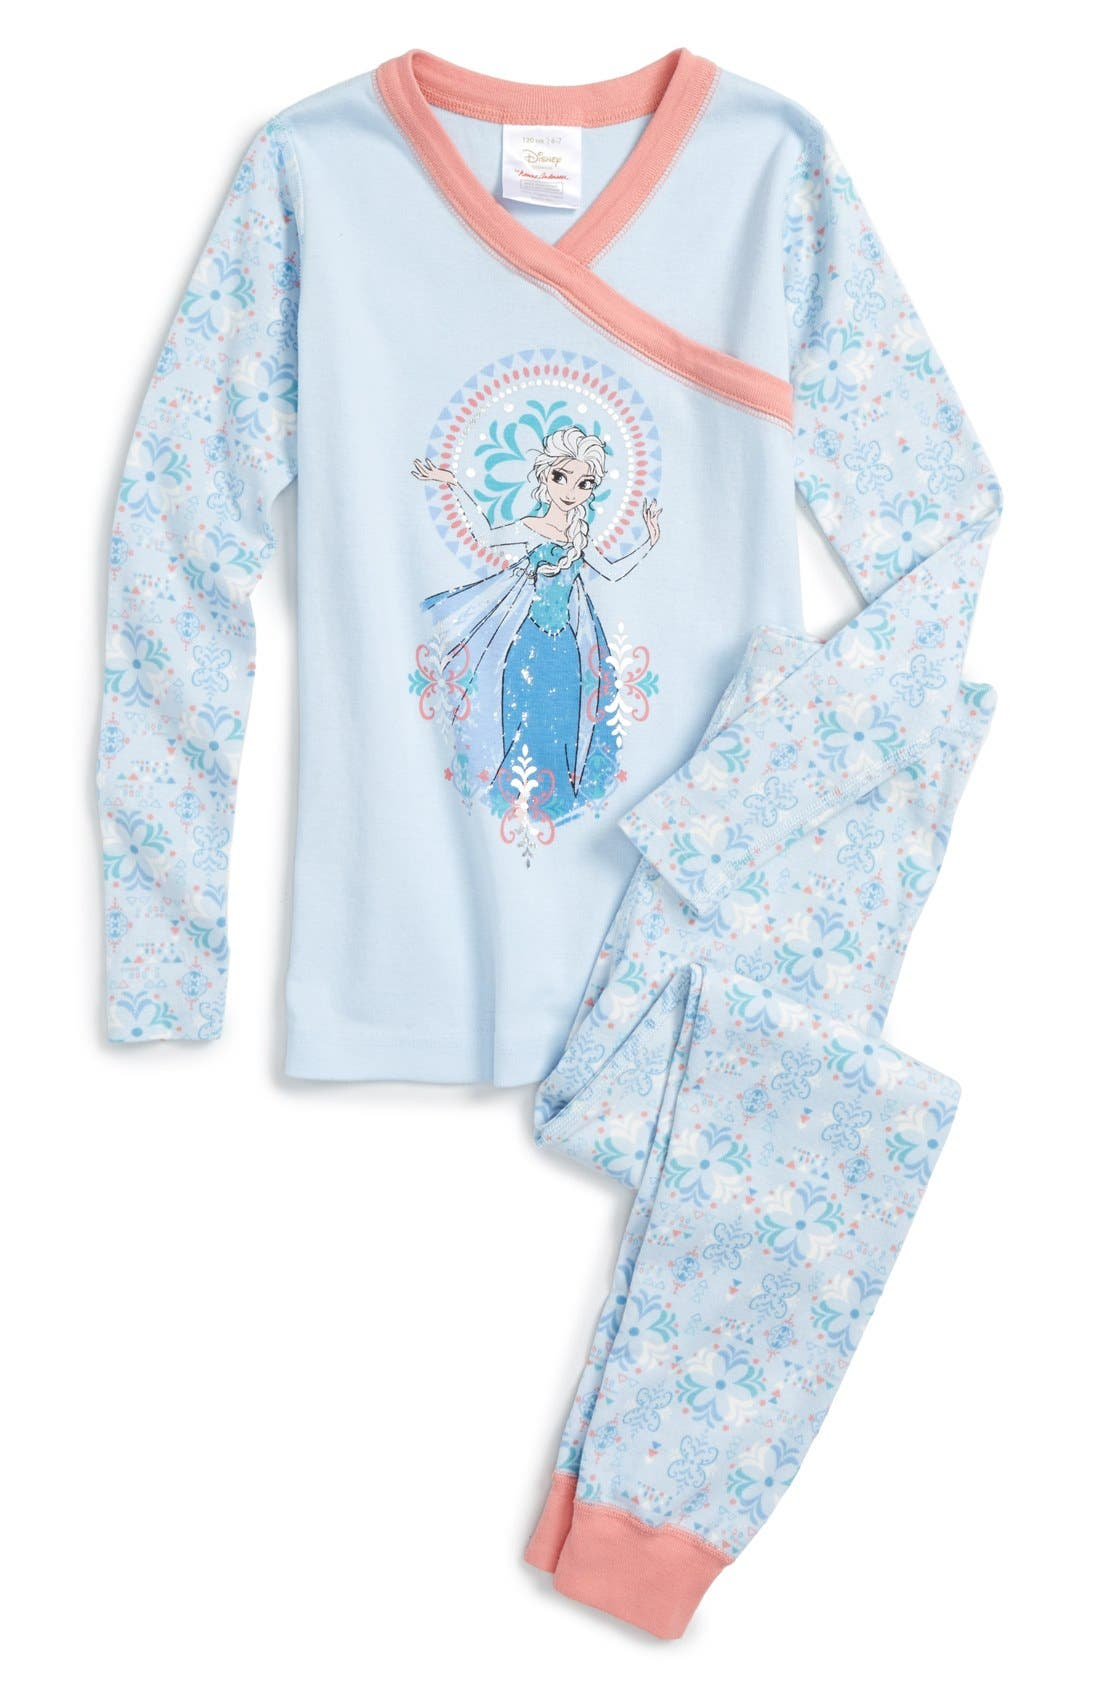 'Disney<sup>®</sup> Frozen' Organic Cotton Two-Piece Fitted Pajamas,                             Main thumbnail 1, color,                             418